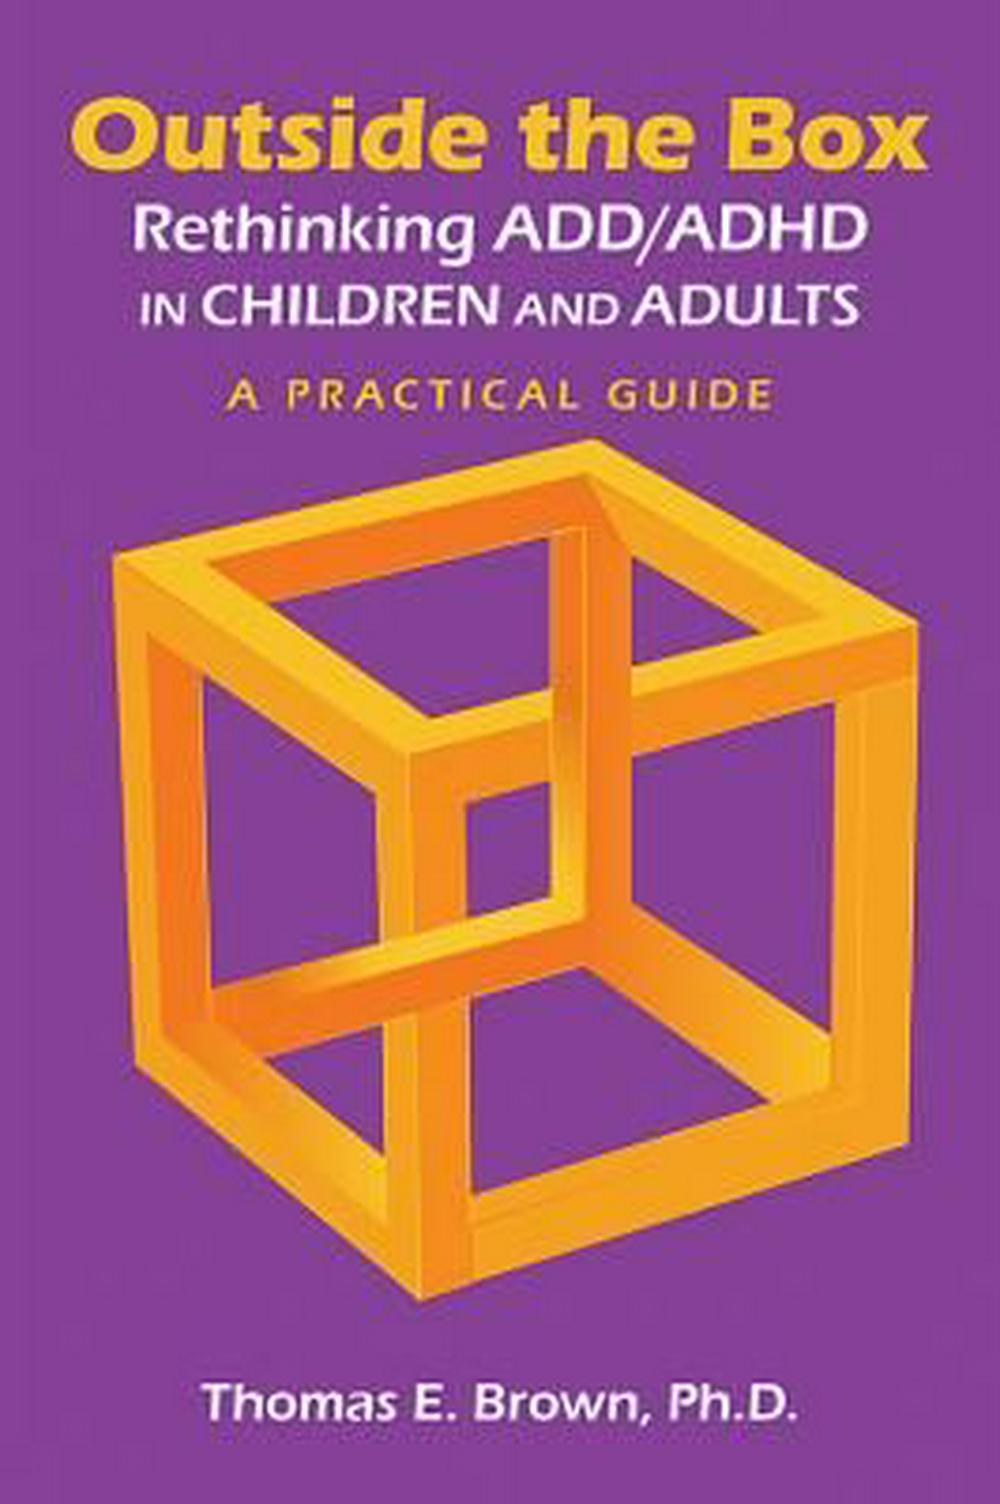 Outside the Box: Rethinking Add/ADHD in Children and AdultsA Practical Guide